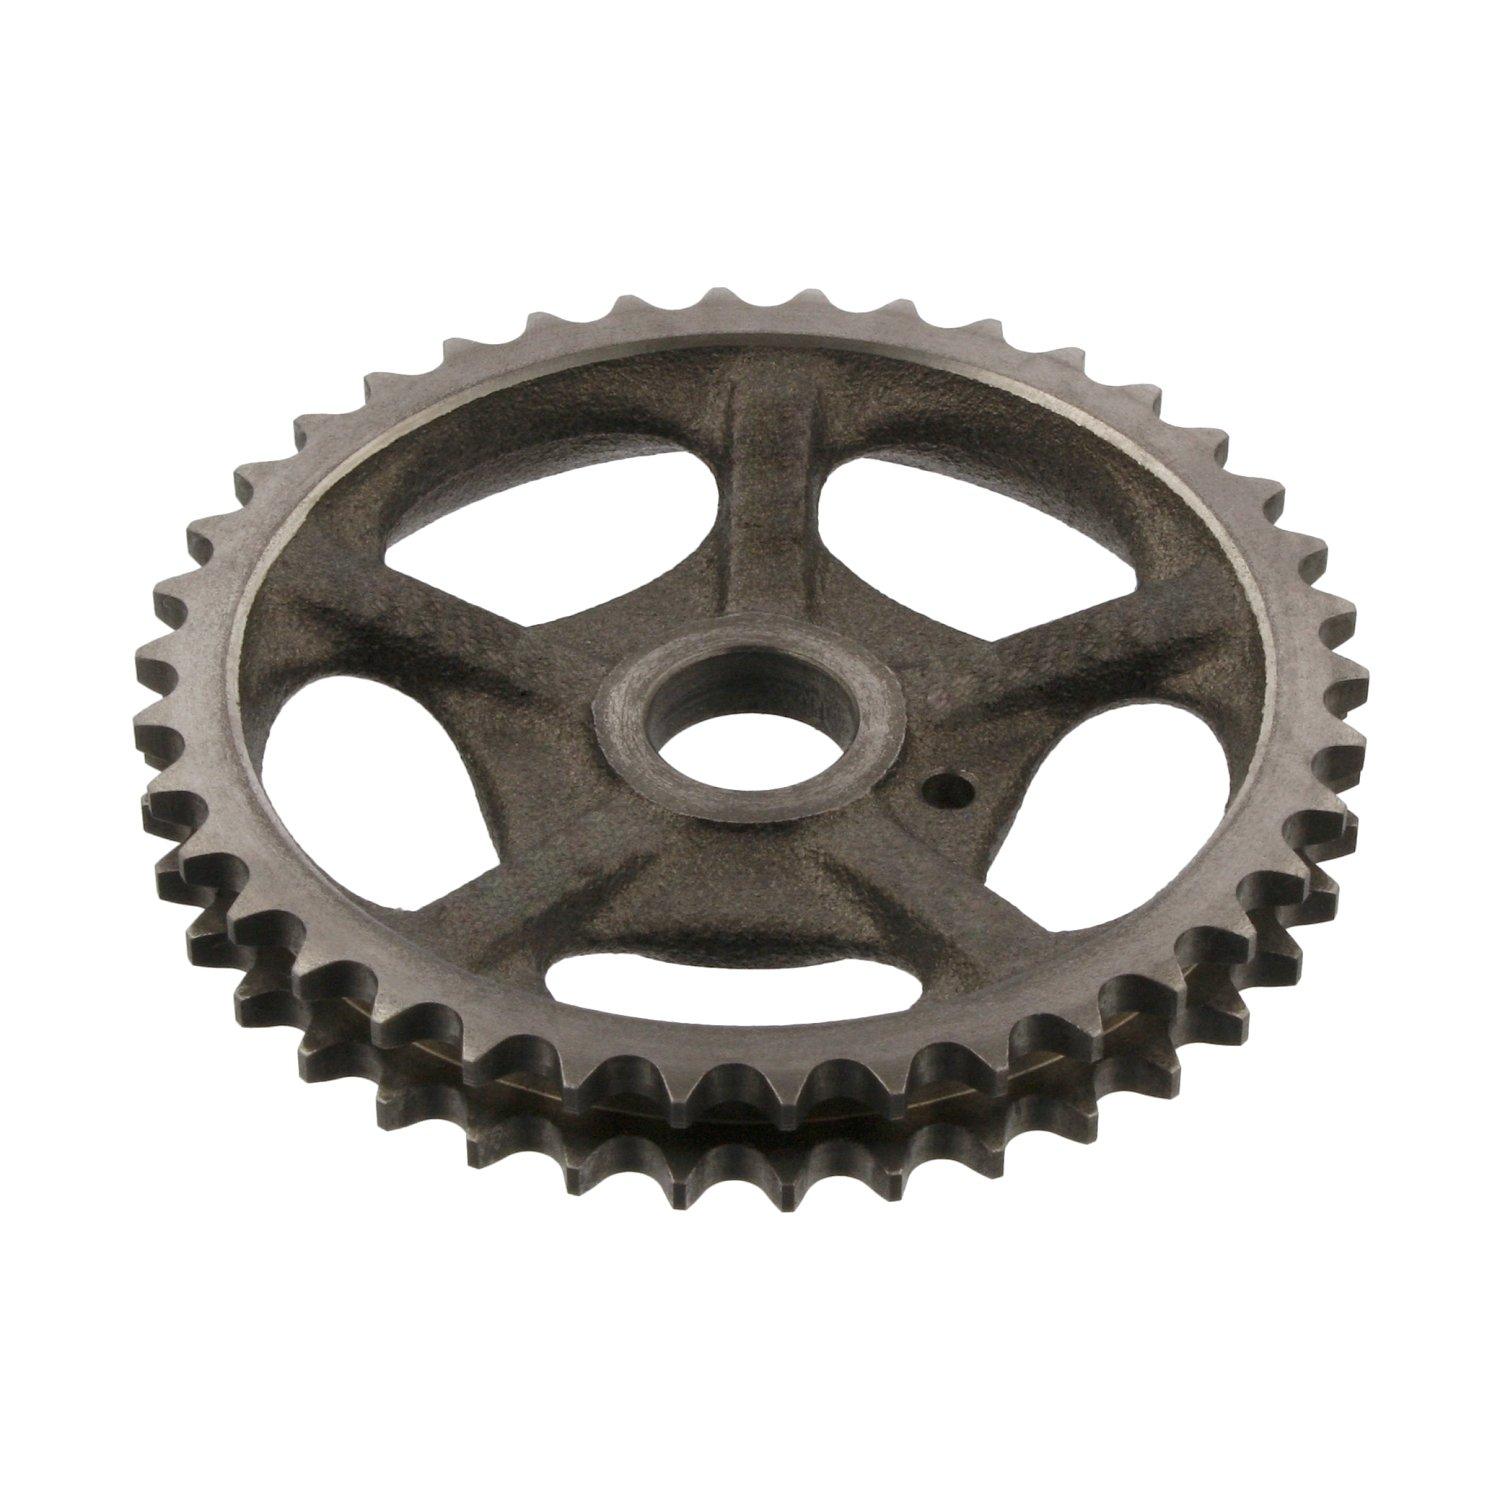 febi bilstein 25022 camshaft timing gear for timing chain - Pack of 1